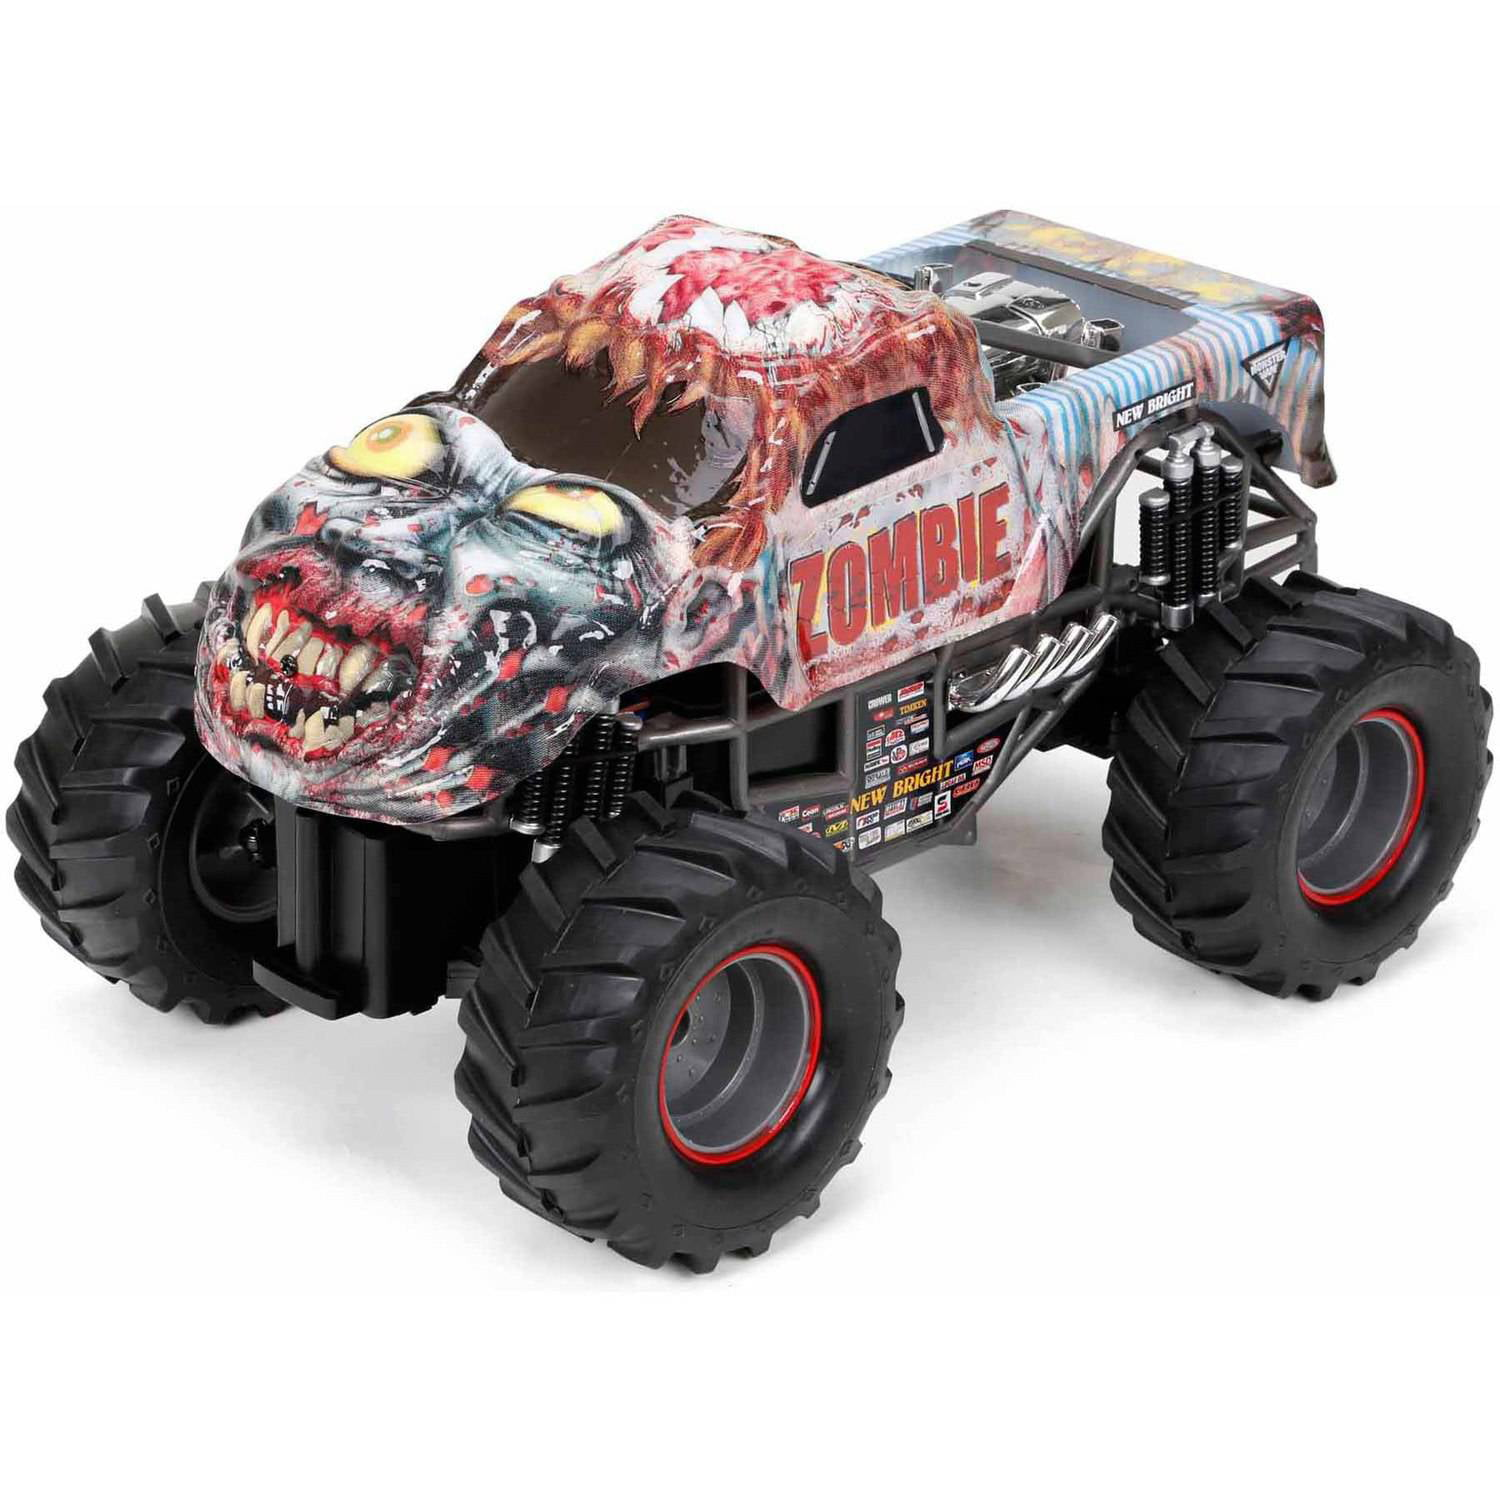 Monster Jam Zombie Full Function Radio Controlled Vehicle